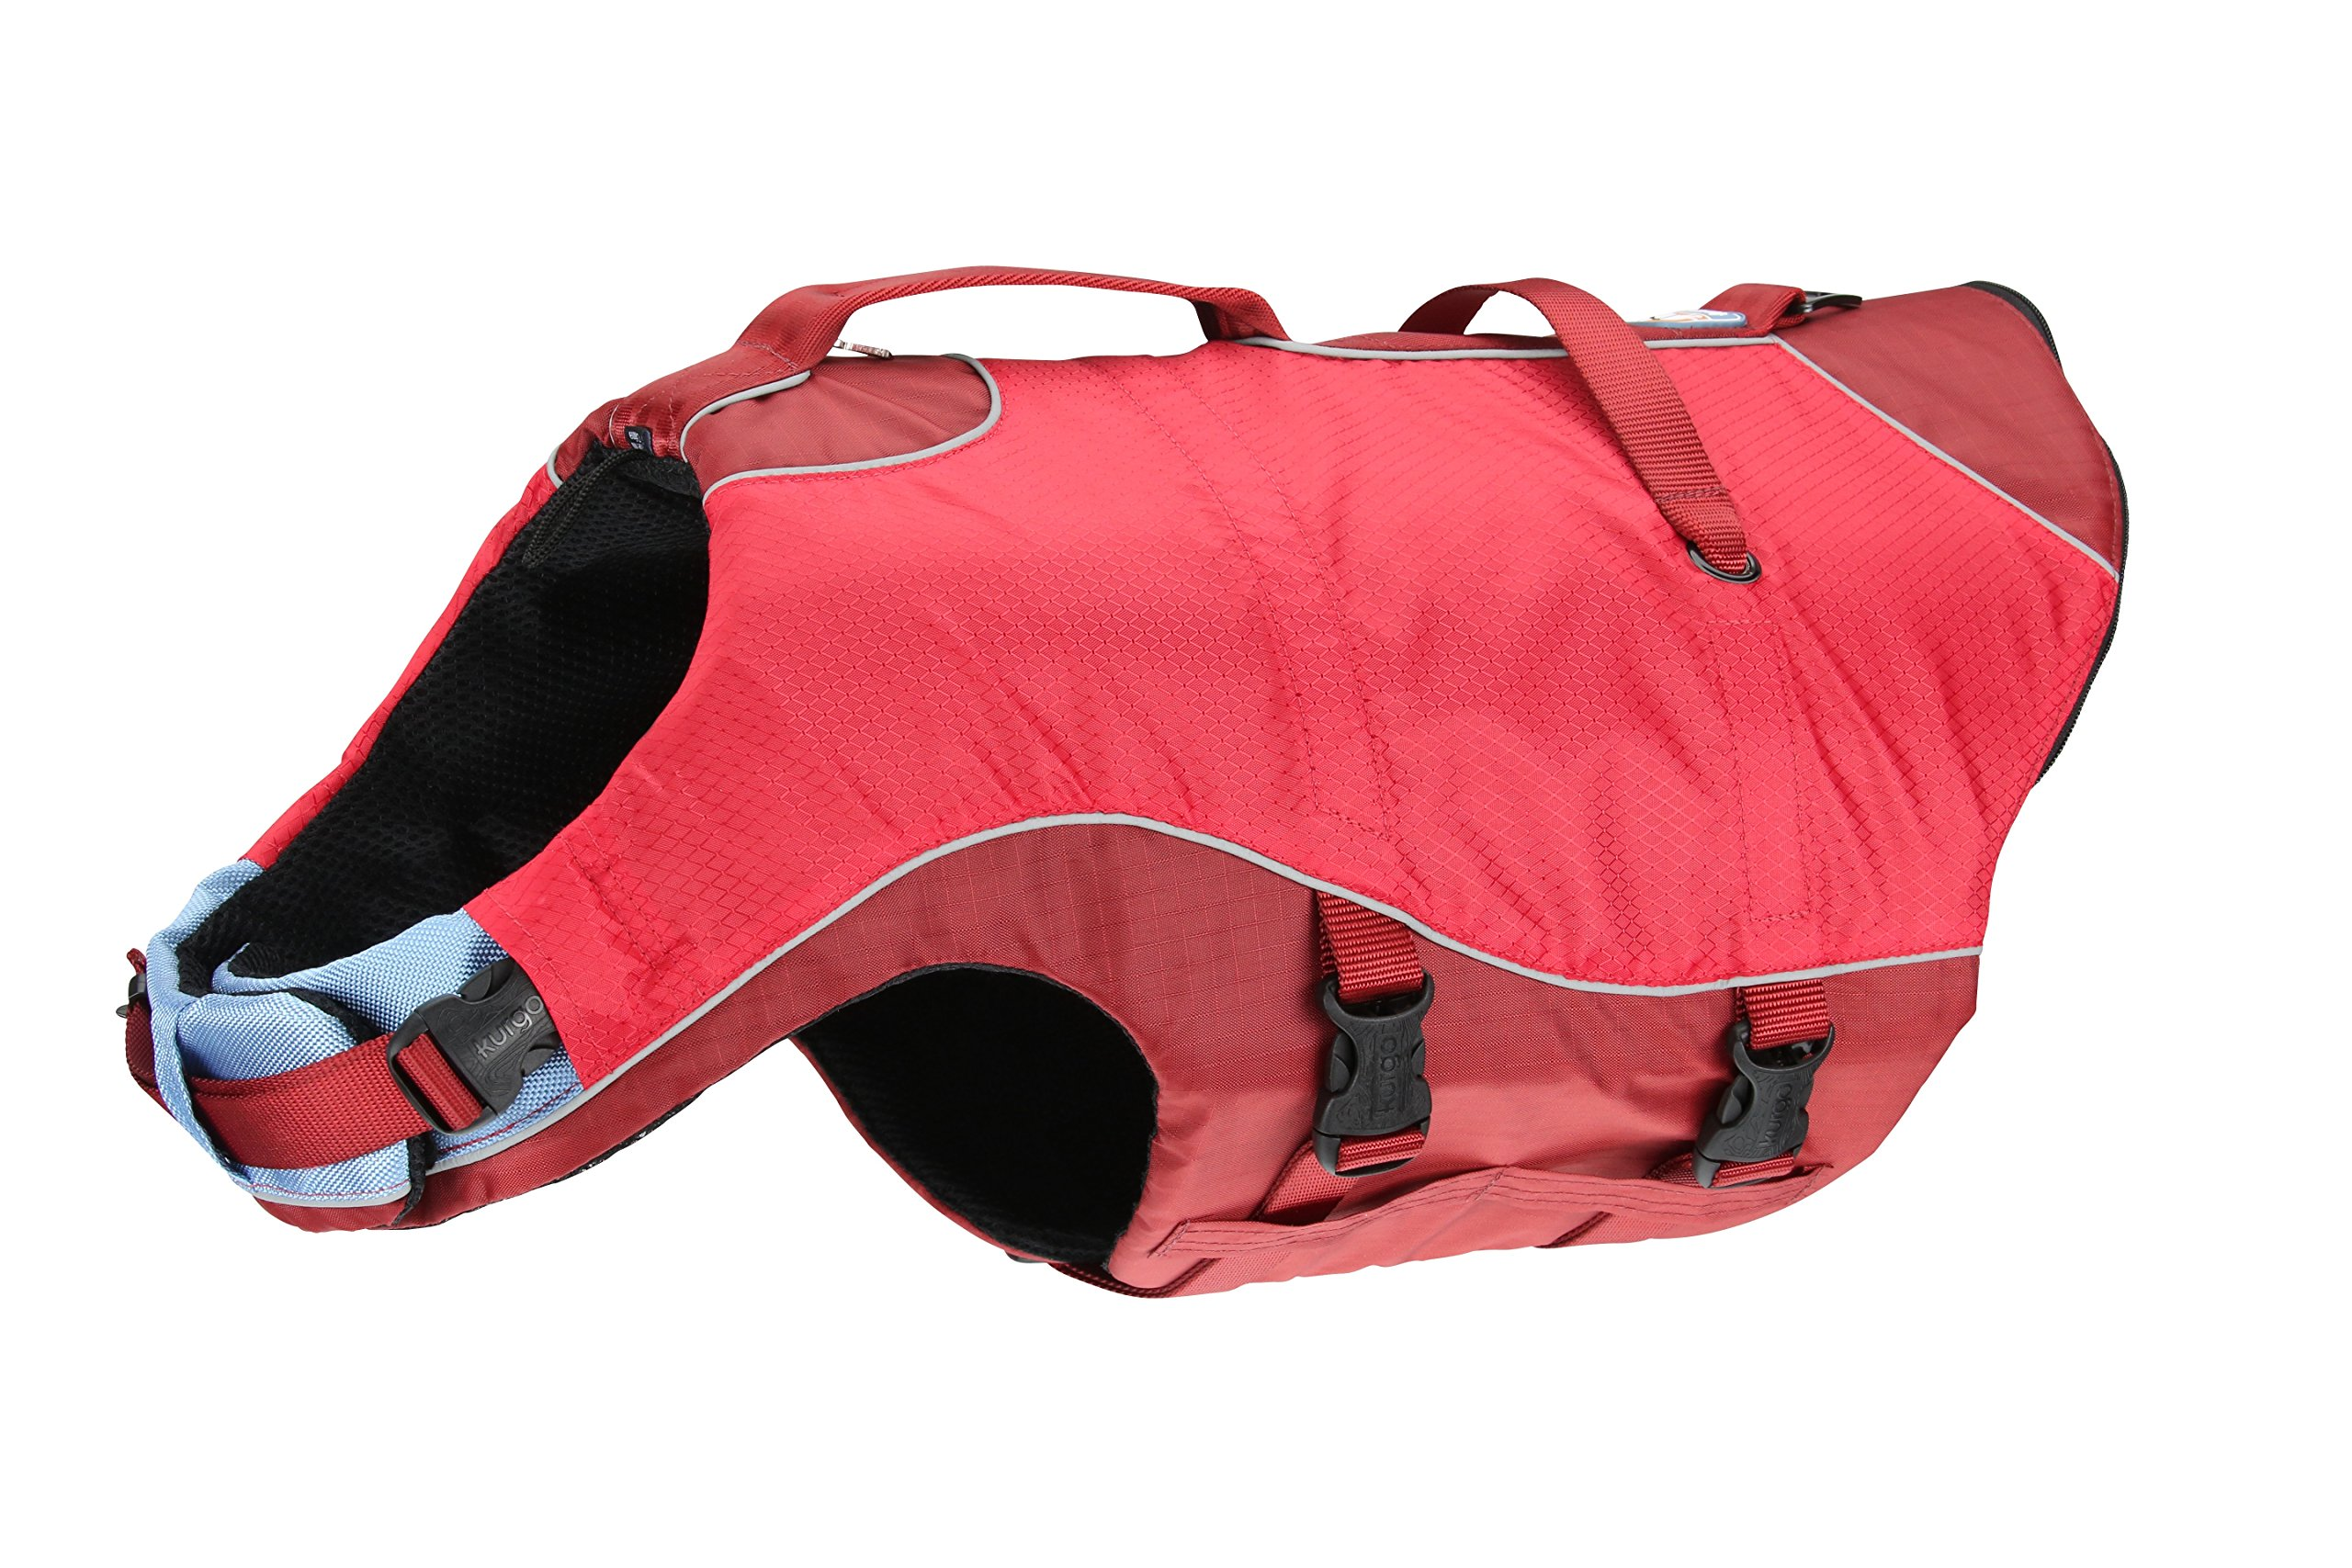 Kurgo Surf N Turf Dog Life Jacket - Adjustable with Reflective Trim, X-Large, Red by Kurgo